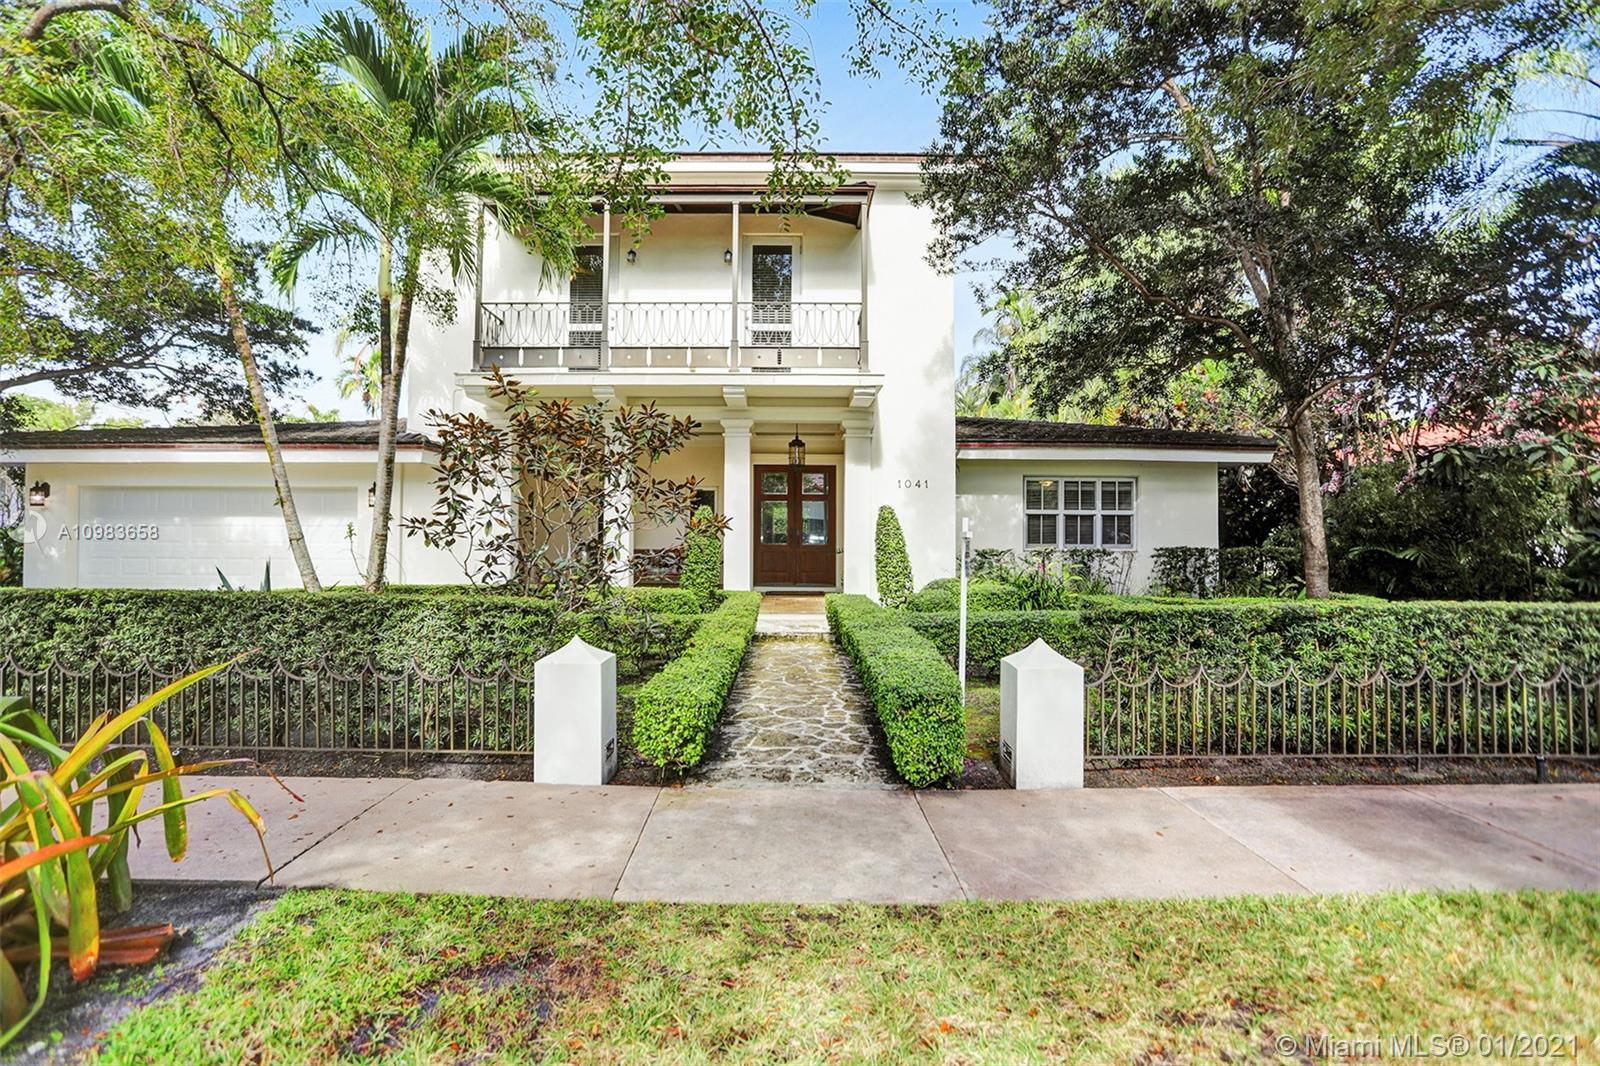 Details for 1041 Catalonia Ave, Coral Gables, FL 33134